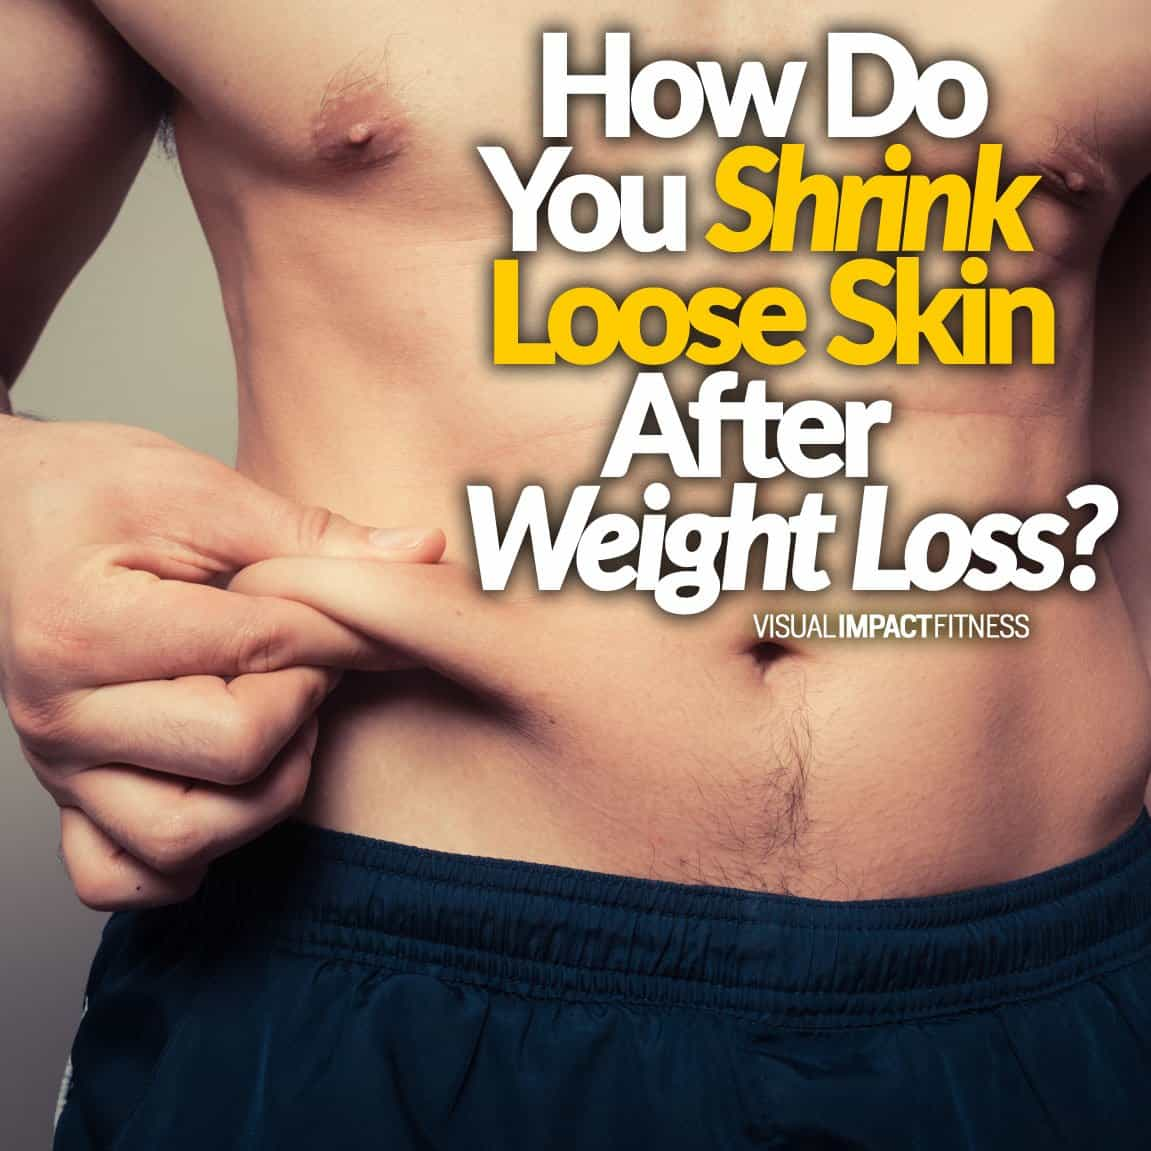 How Do You Shrink Loose Skin After Weight Loss